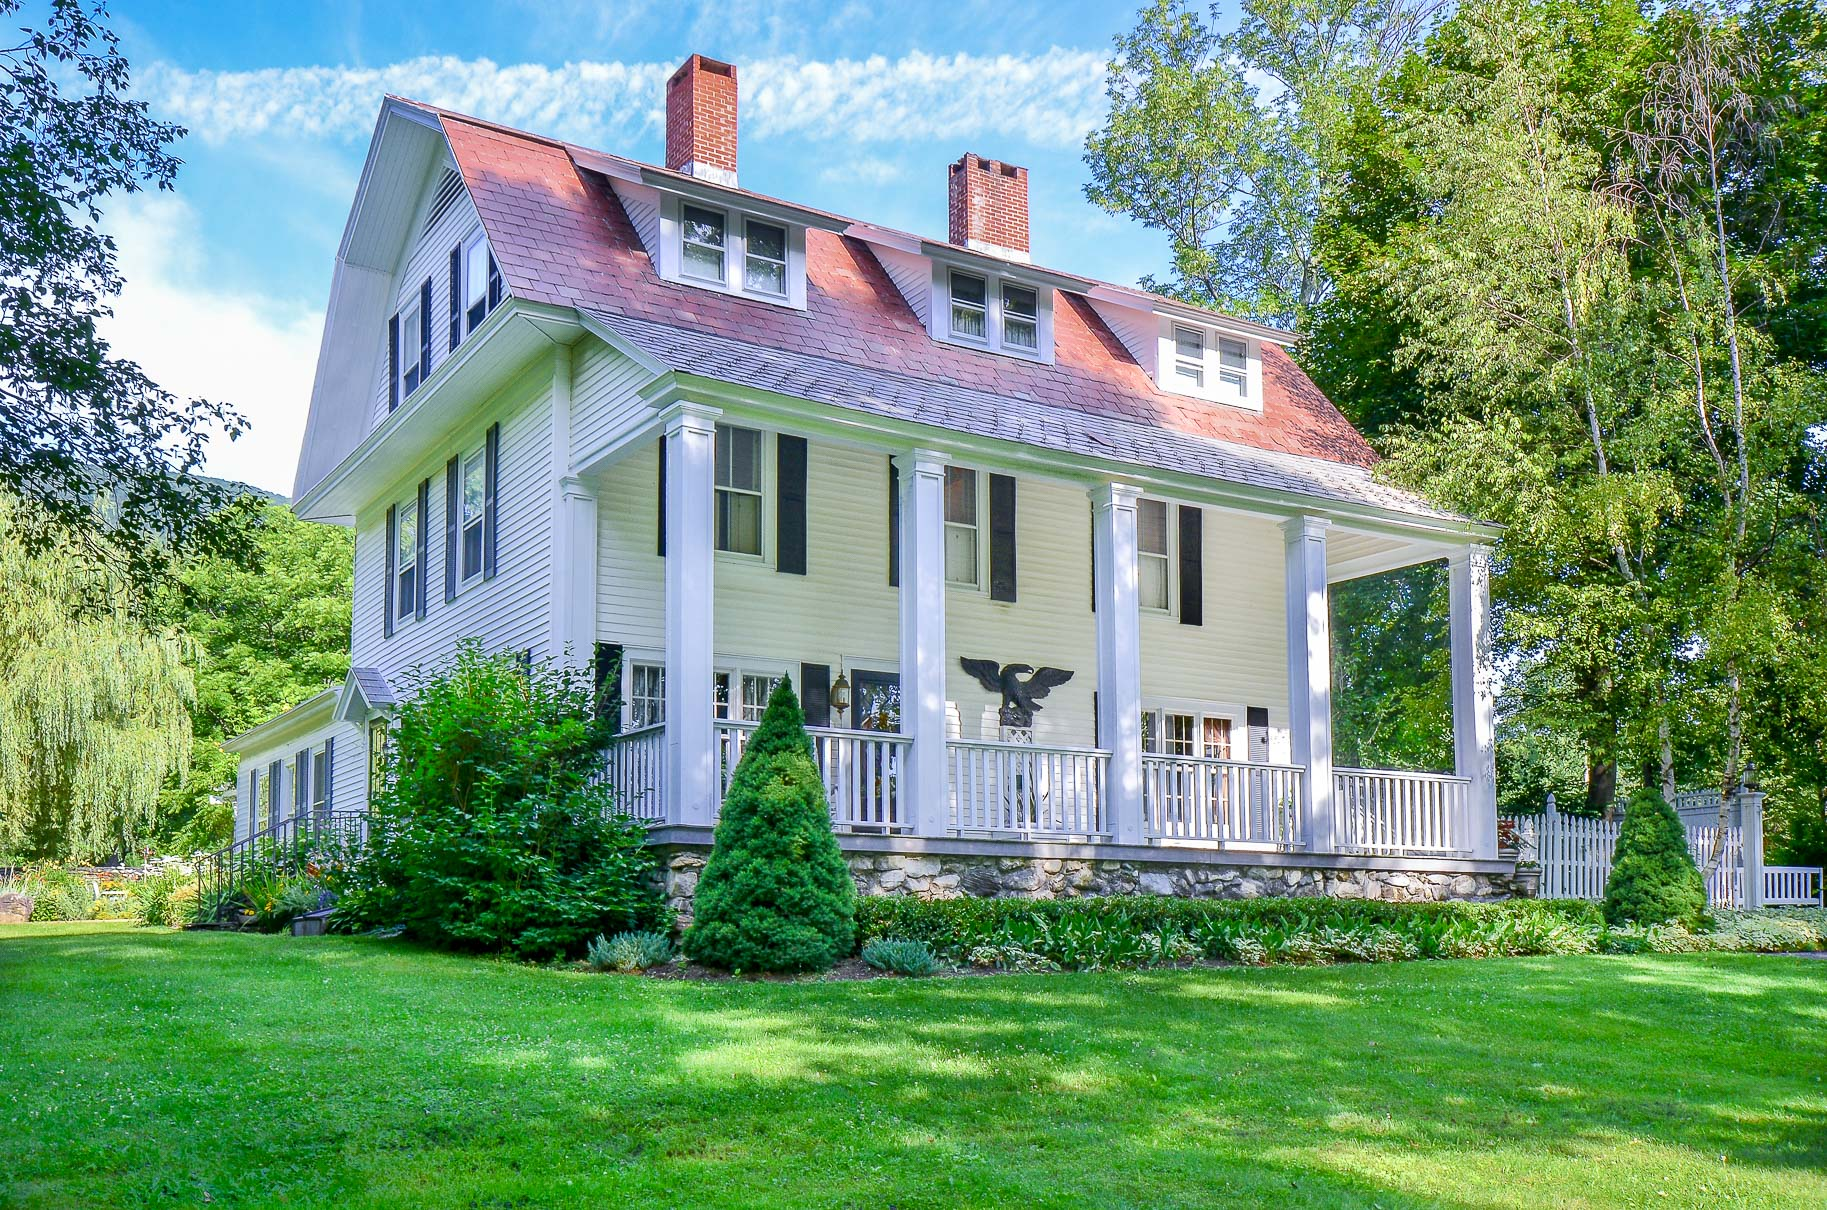 Single Family Home for Sale at Manchester Village Colonial 731 West Rd Manchester, Vermont, 05254 United States